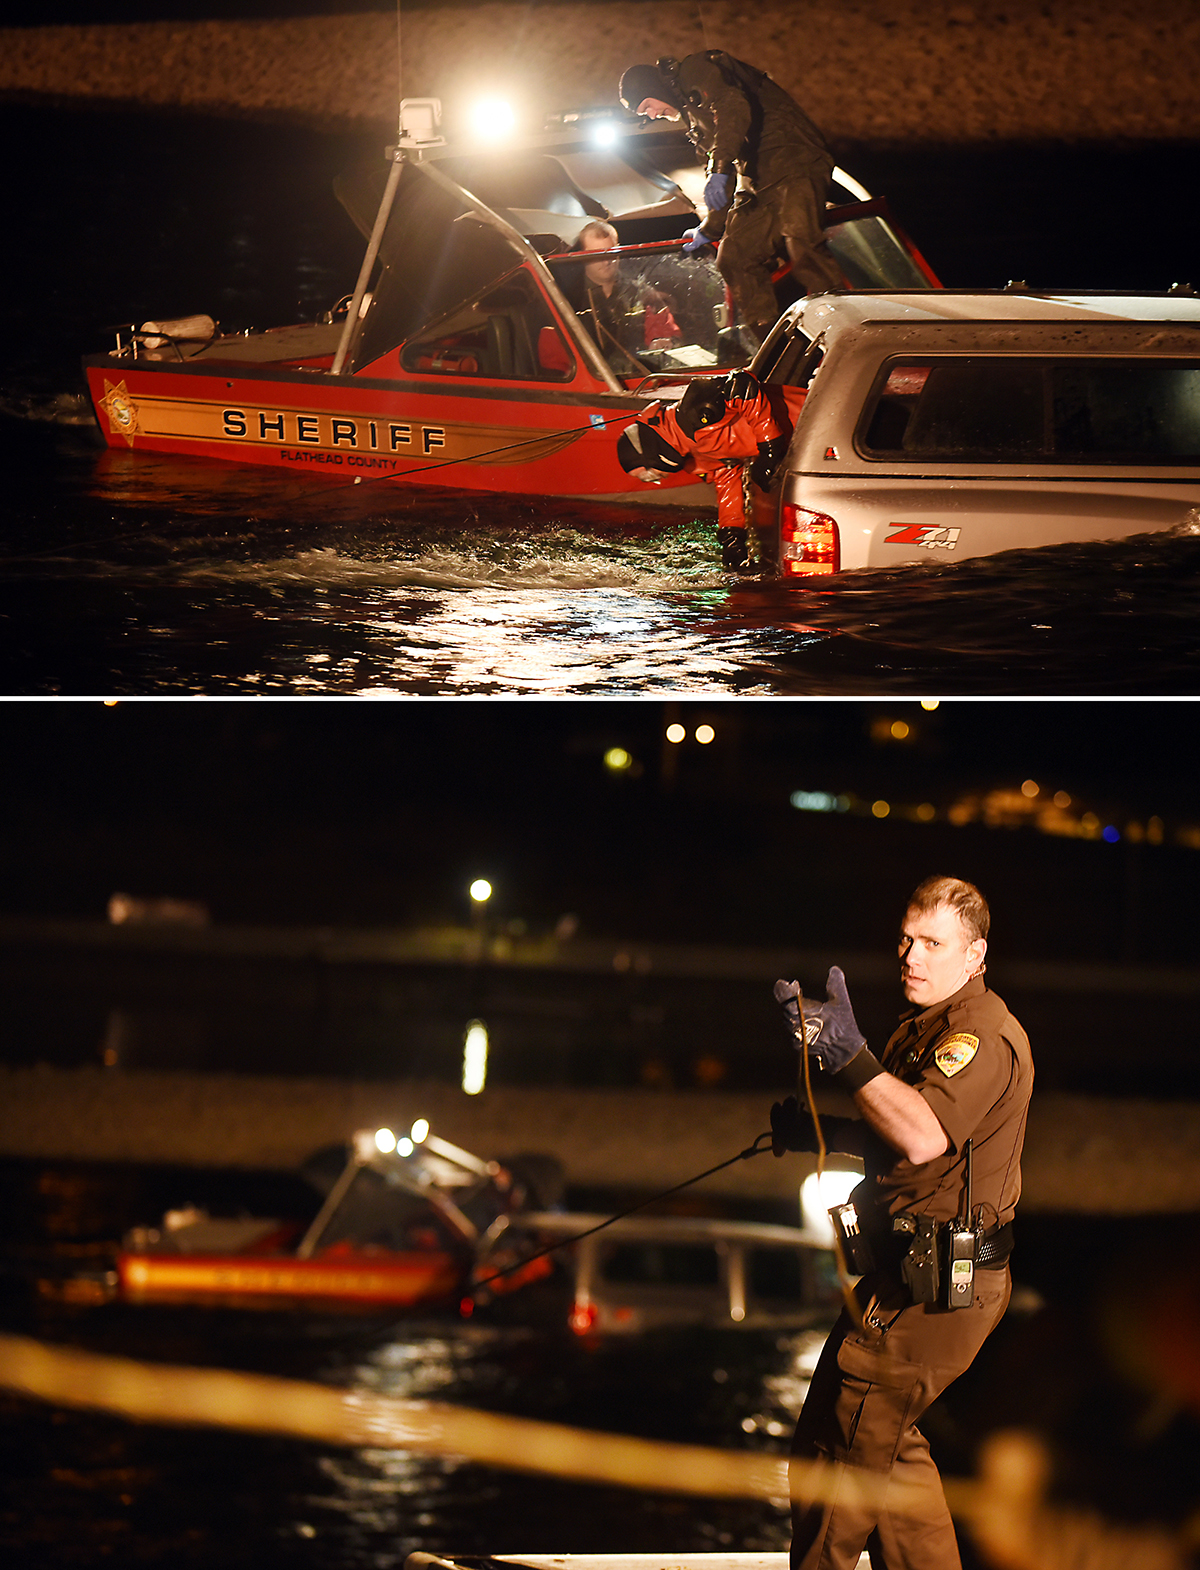 These two images started with a text from a Deputy that read: Truck in water in Bigfork. I never mind getting woken up at 2 a.m. when I get photos like this out of it.